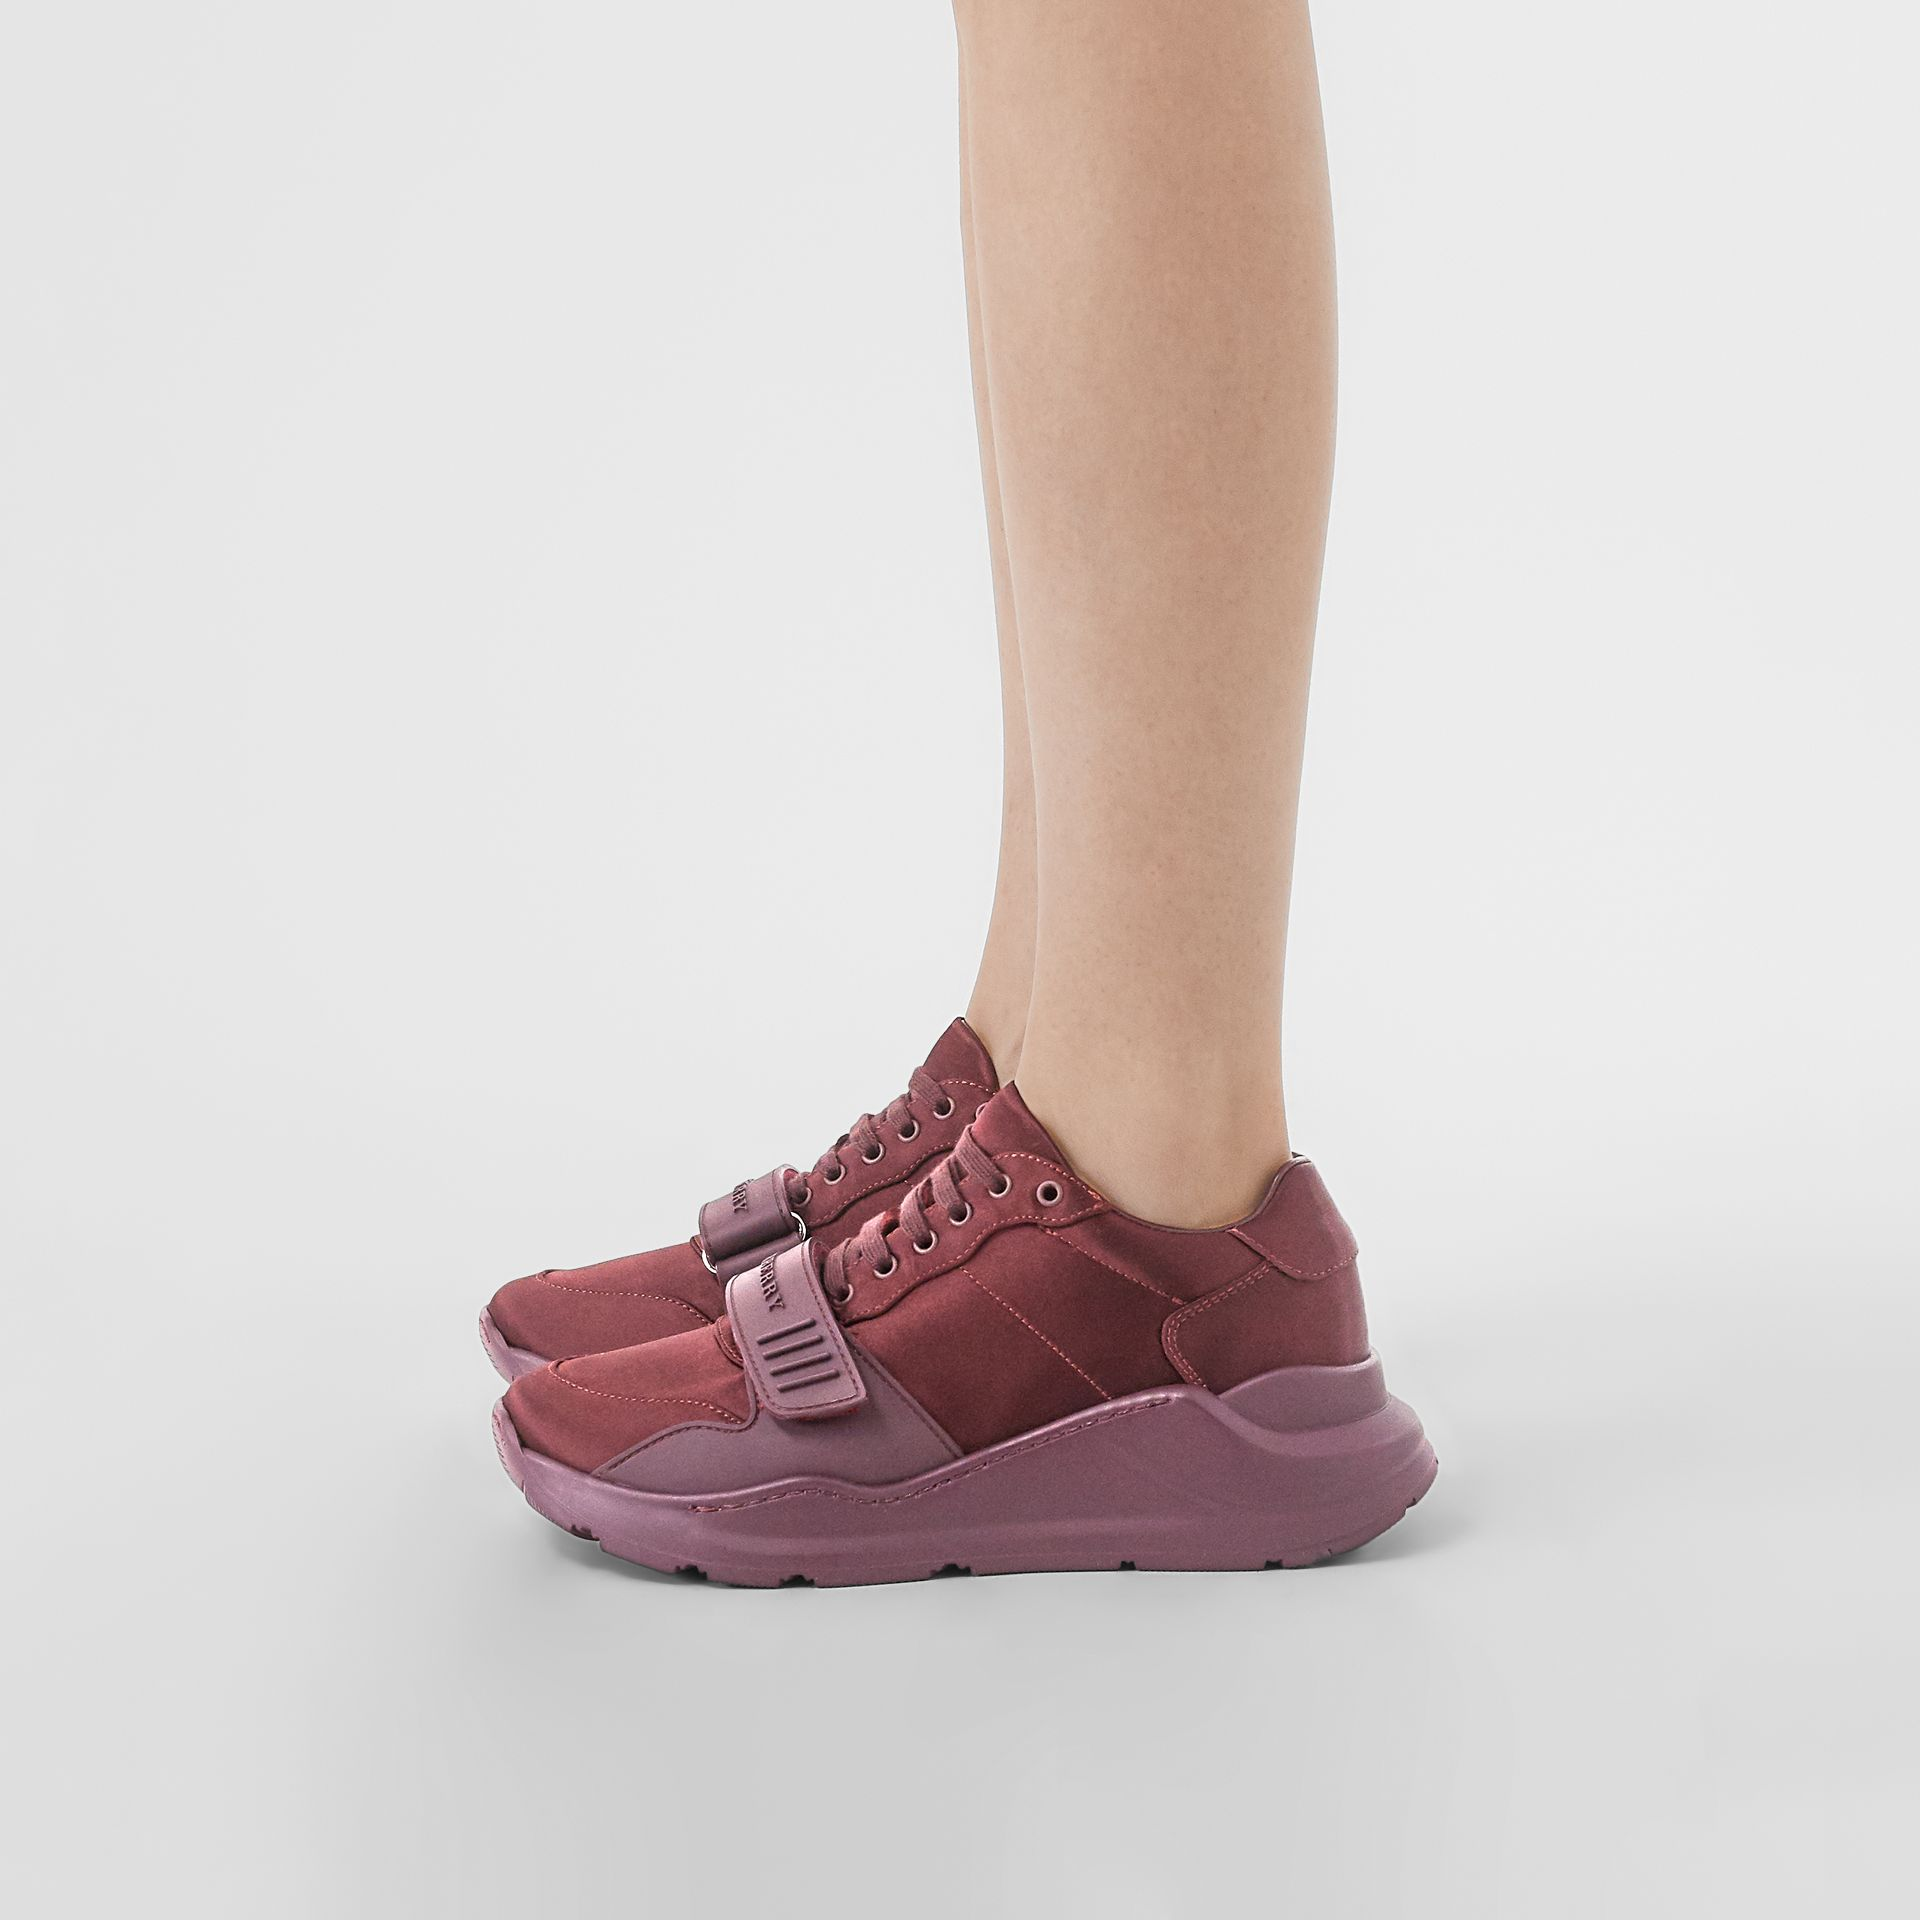 Satin Sneakers in Claret - Women | Burberry United Kingdom - gallery image 2